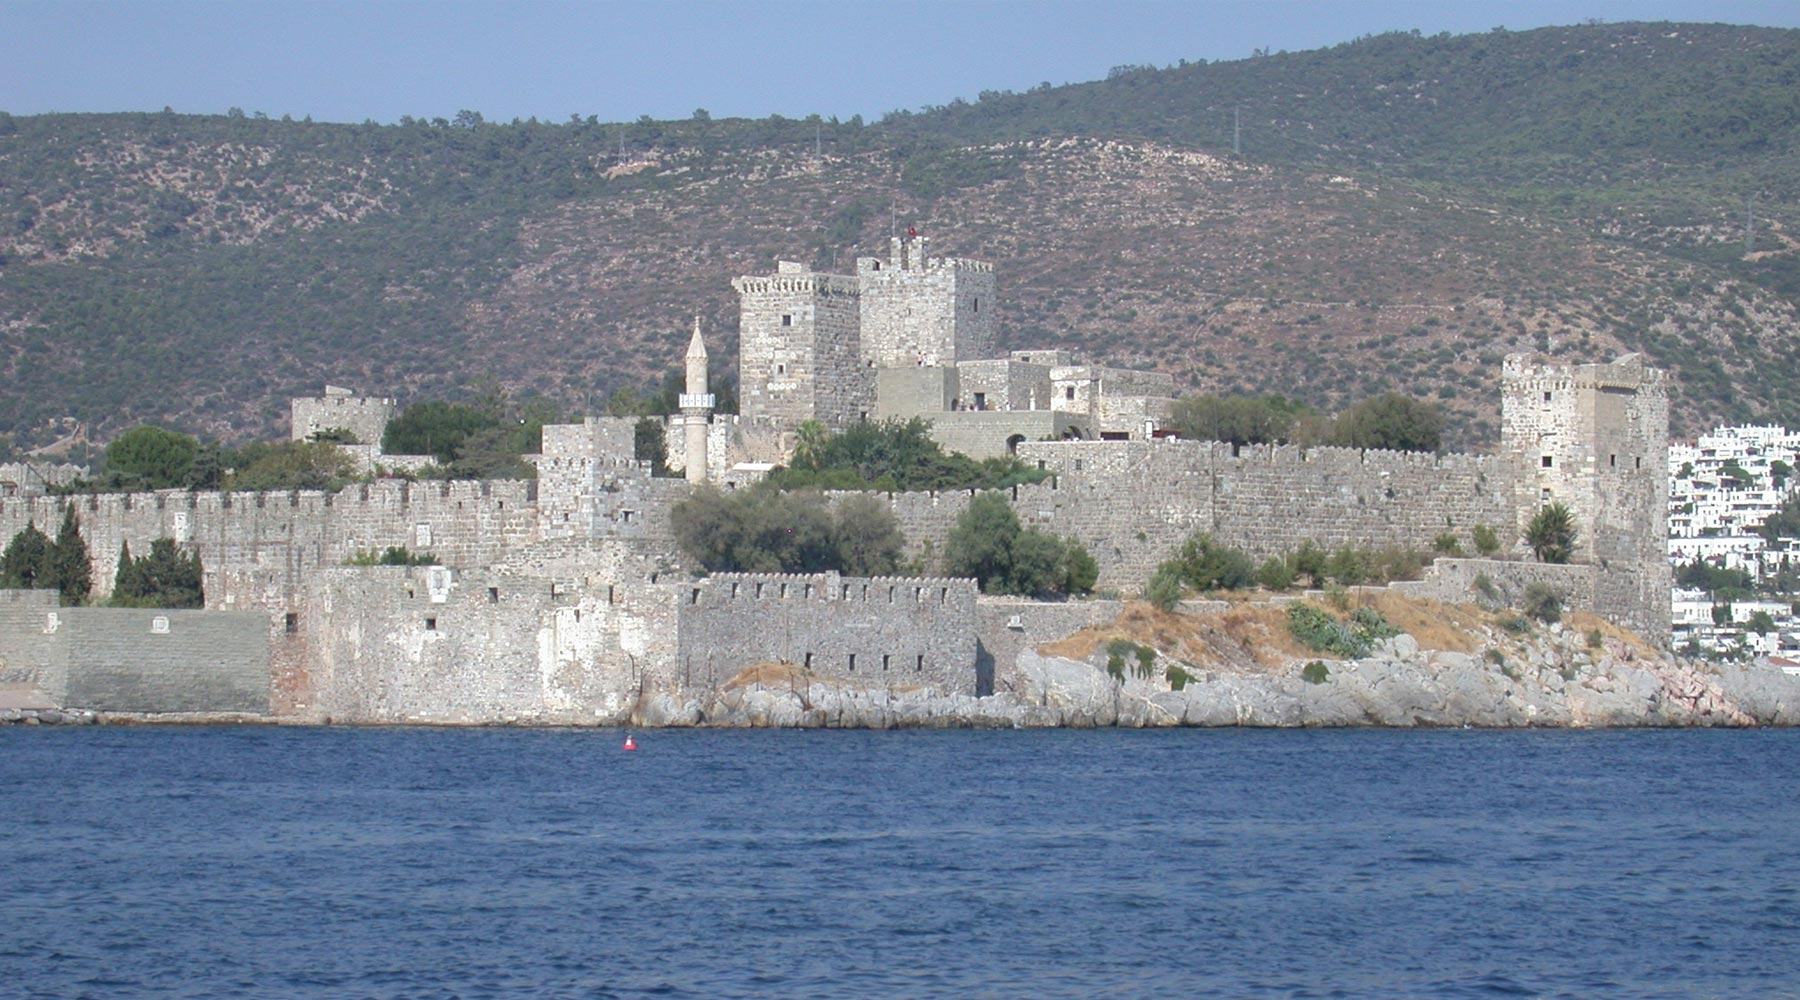 Bodrum Castle – The Castle of St. Peter in Bodrum